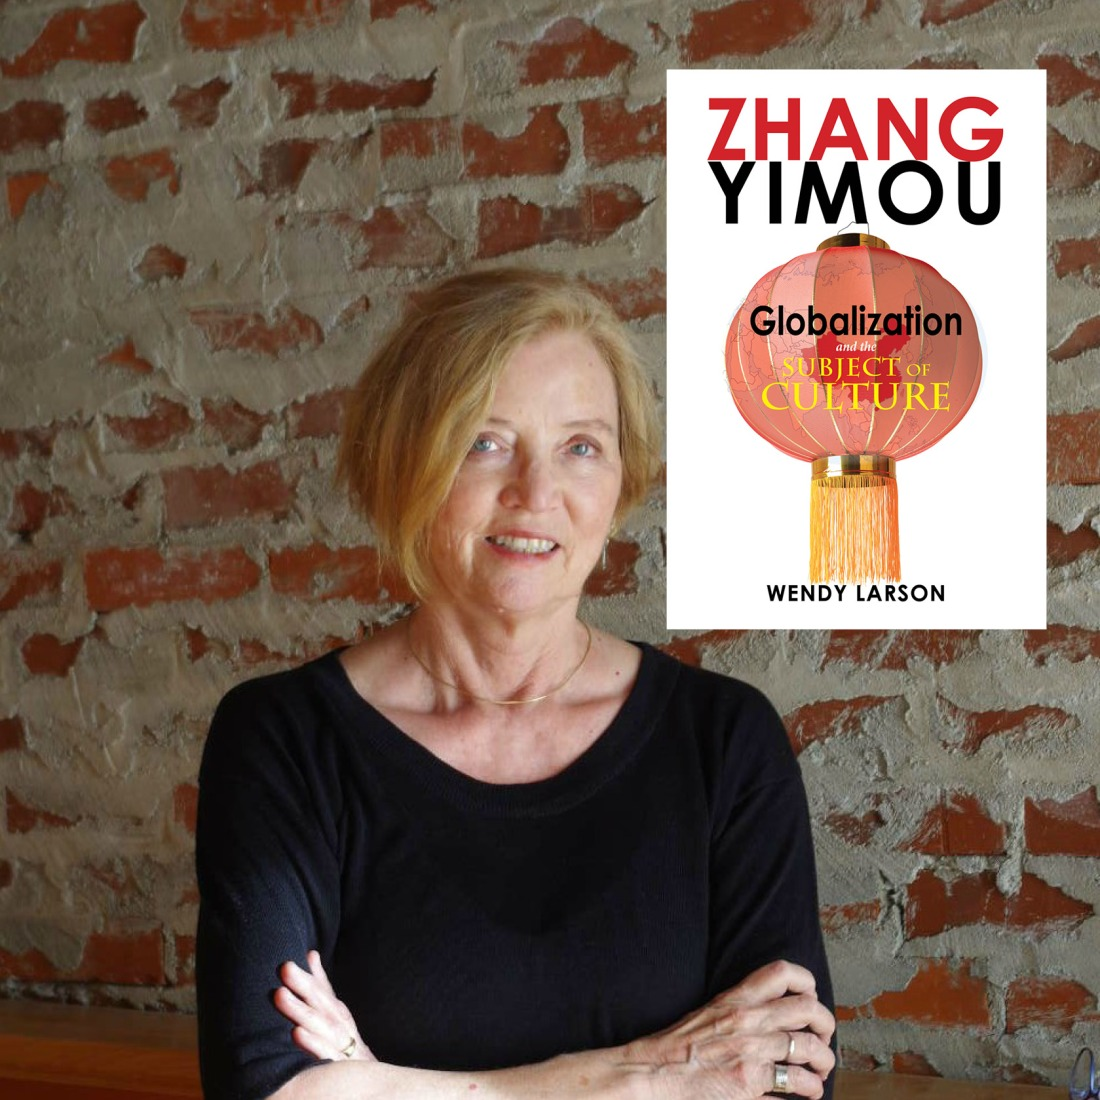 Cambria Press author Wendy Larson publication Zhang Yimou